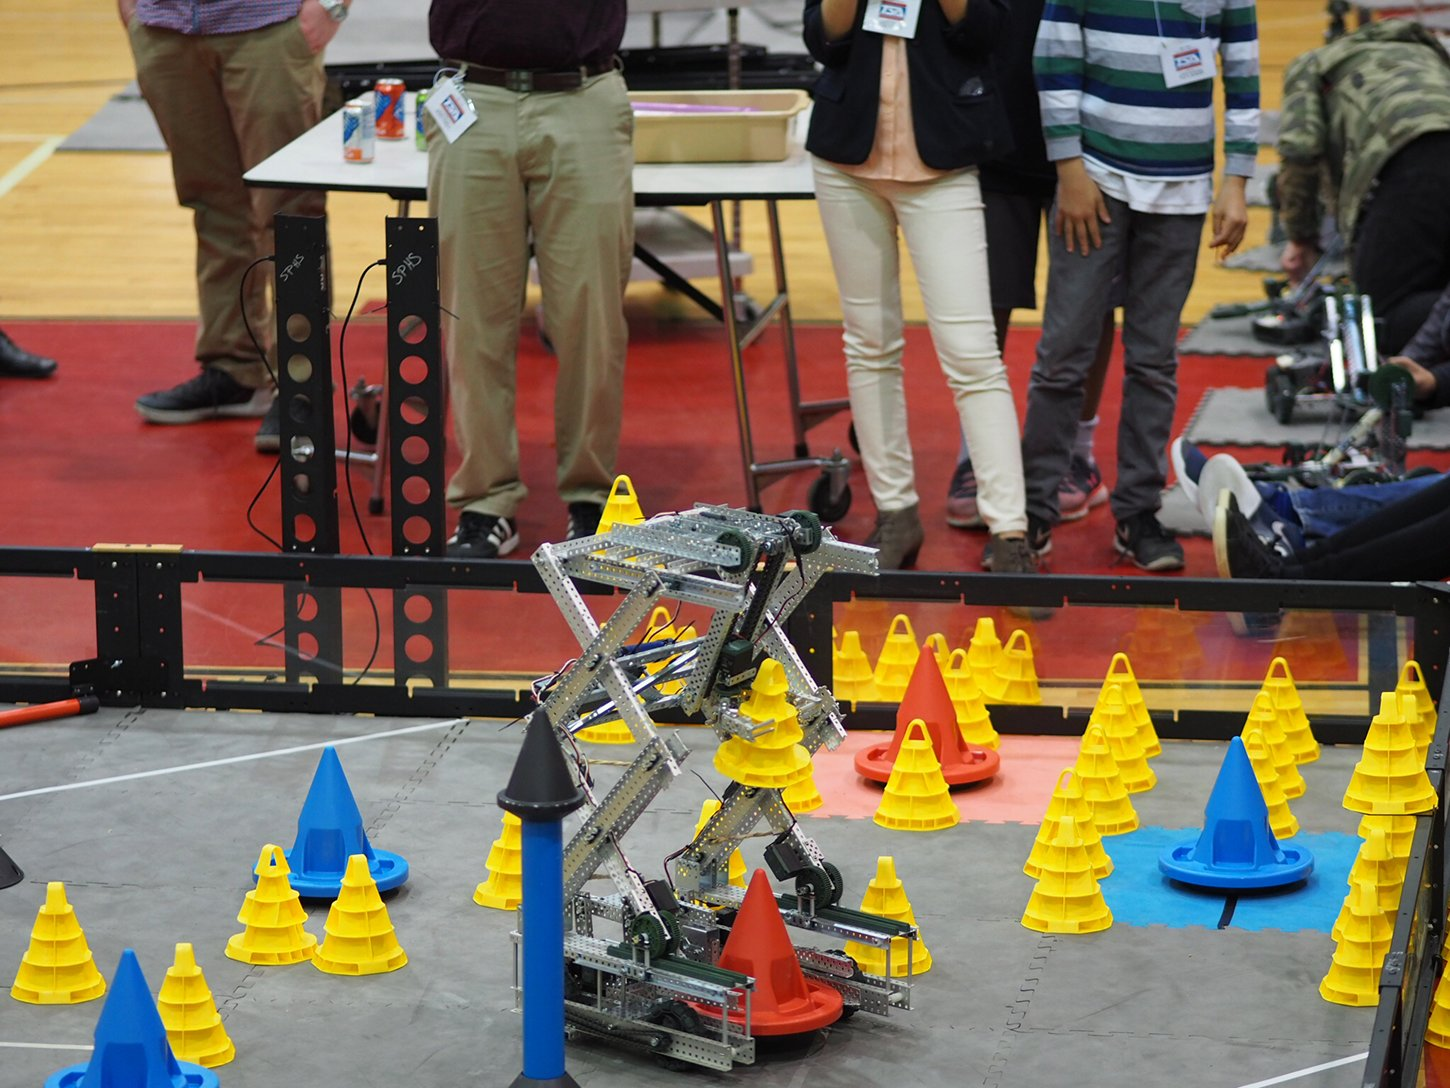 The club's competing robot, named Do You Even Lift, advanced to the national TSA competition last year.